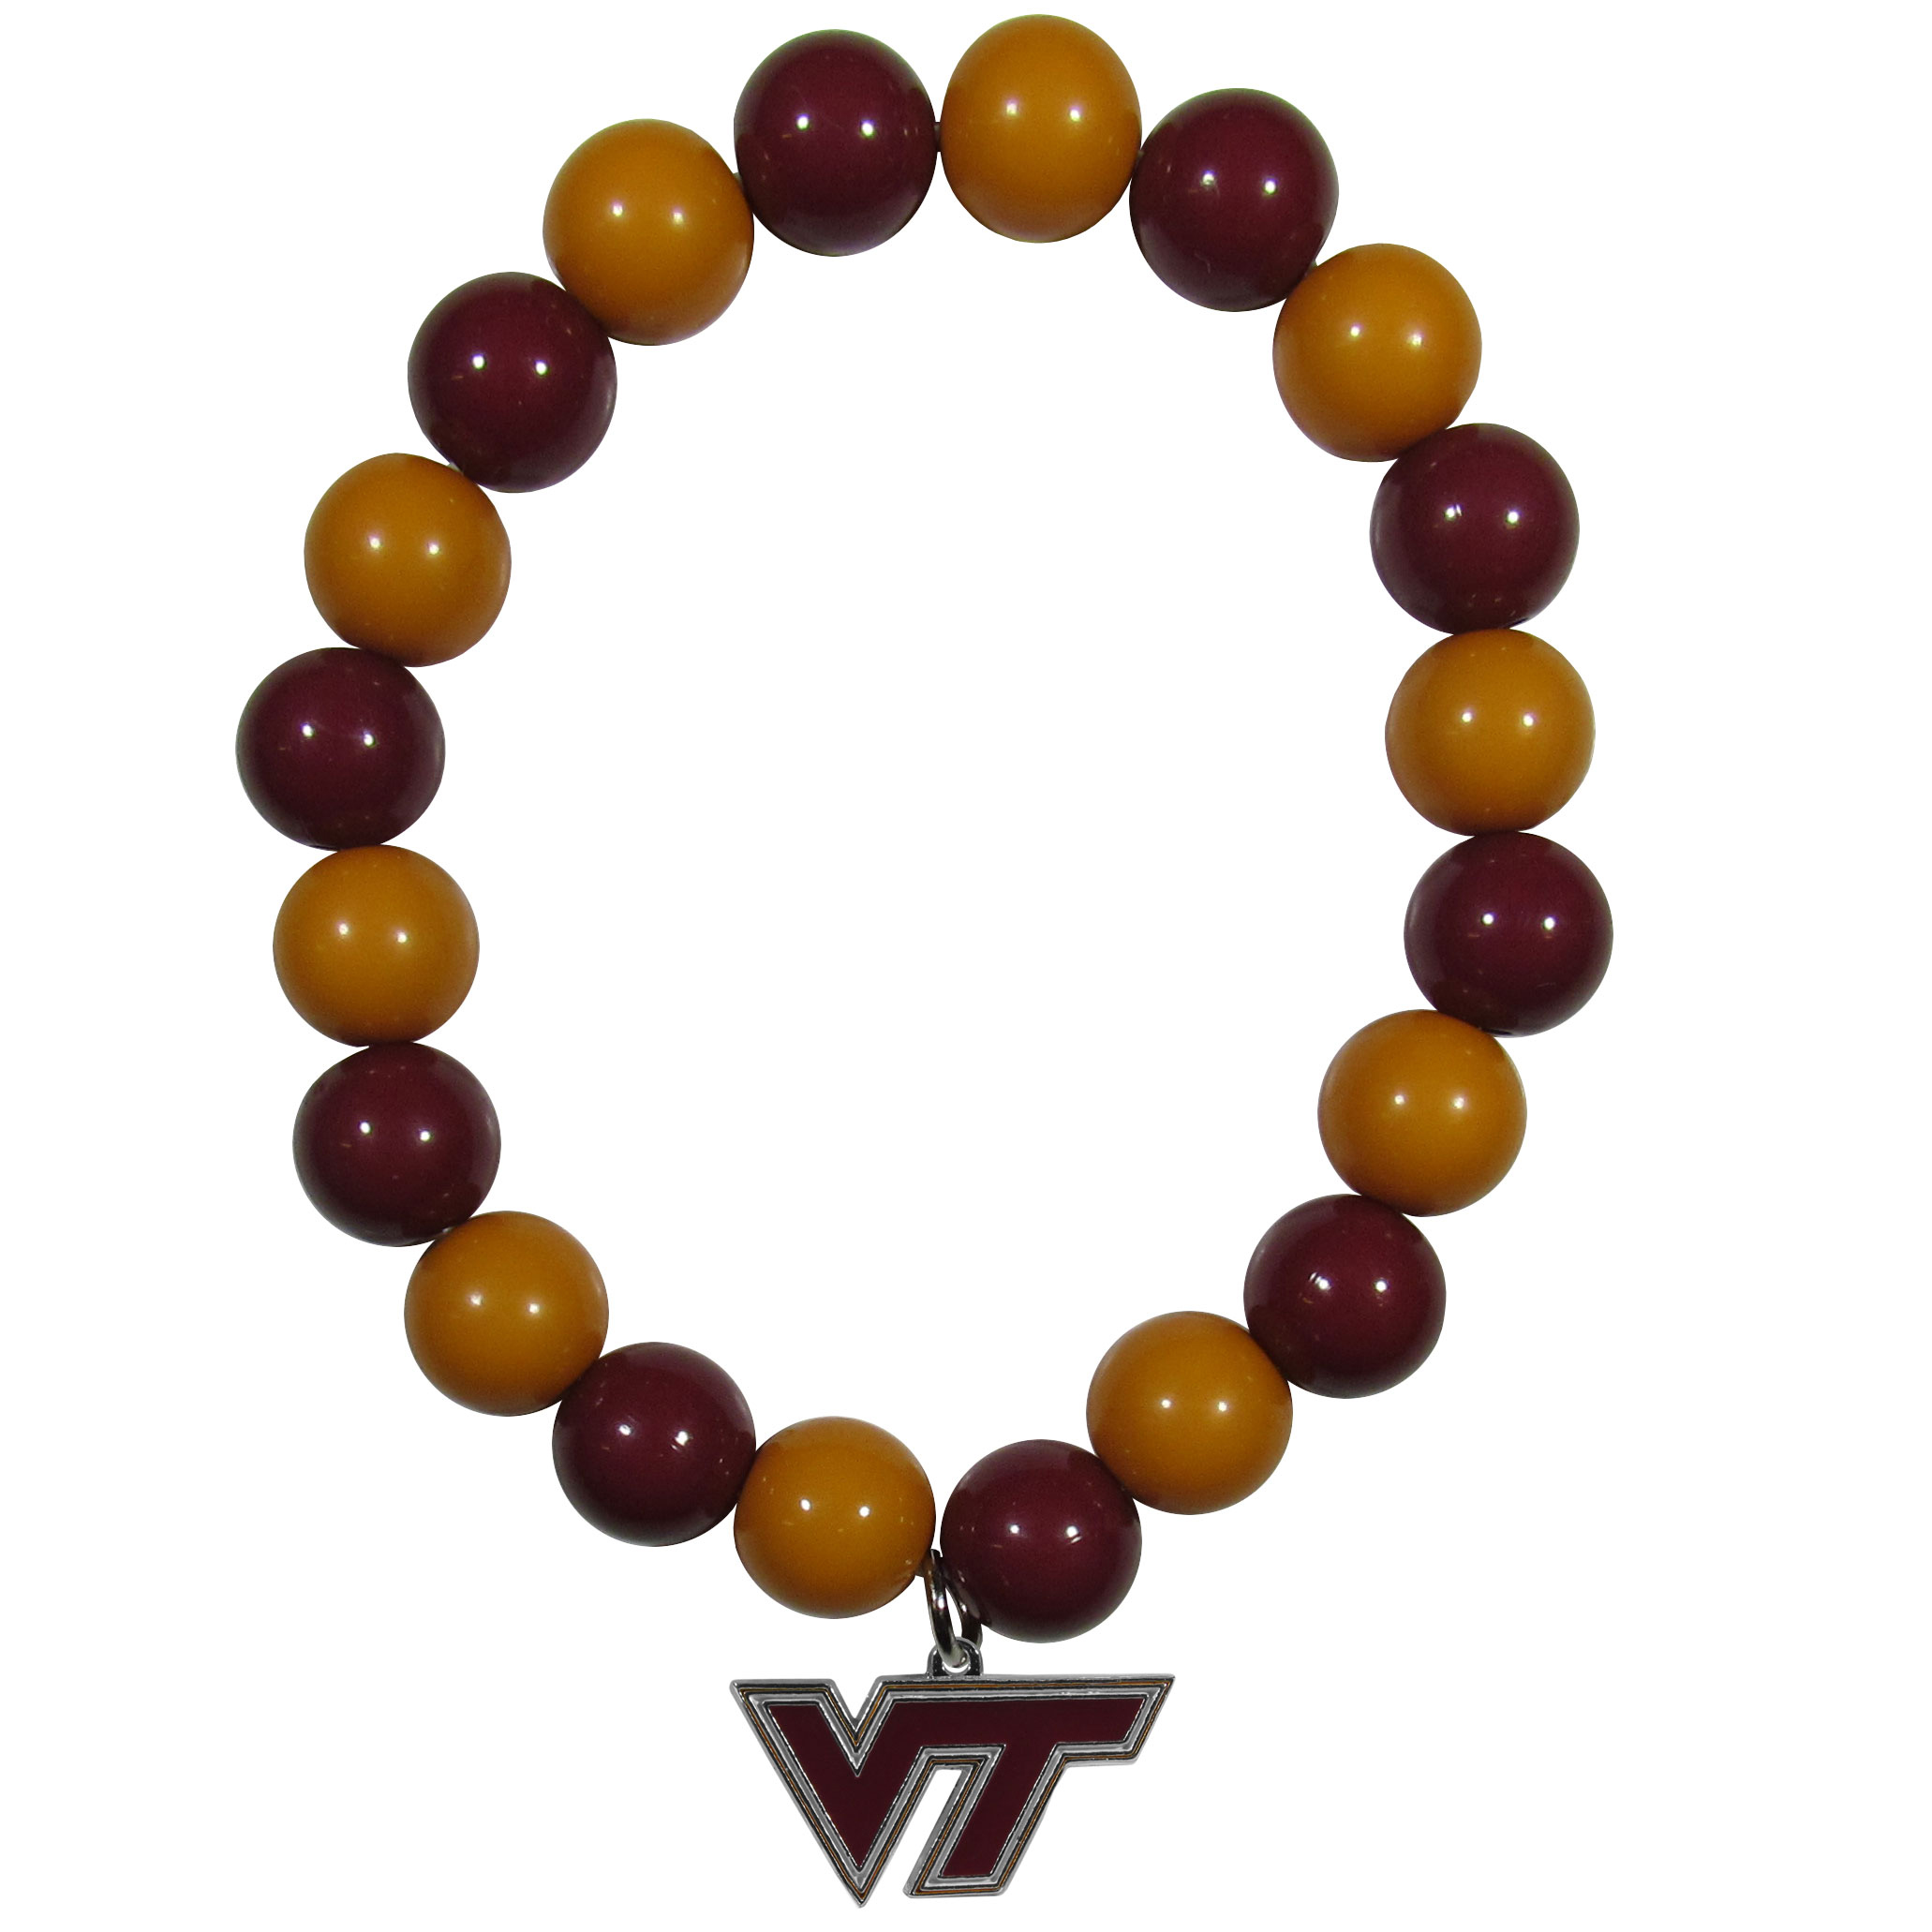 Virginia Tech Hokies Fan Bead Bracelet - Flash your Virginia Tech Hokies spirit with this bright stretch bracelet. This new bracelet features multicolored team beads on stretch cord with a nickel-free enameled chrome team charm. This bracelet adds the perfect pop of color to your game day accessories.